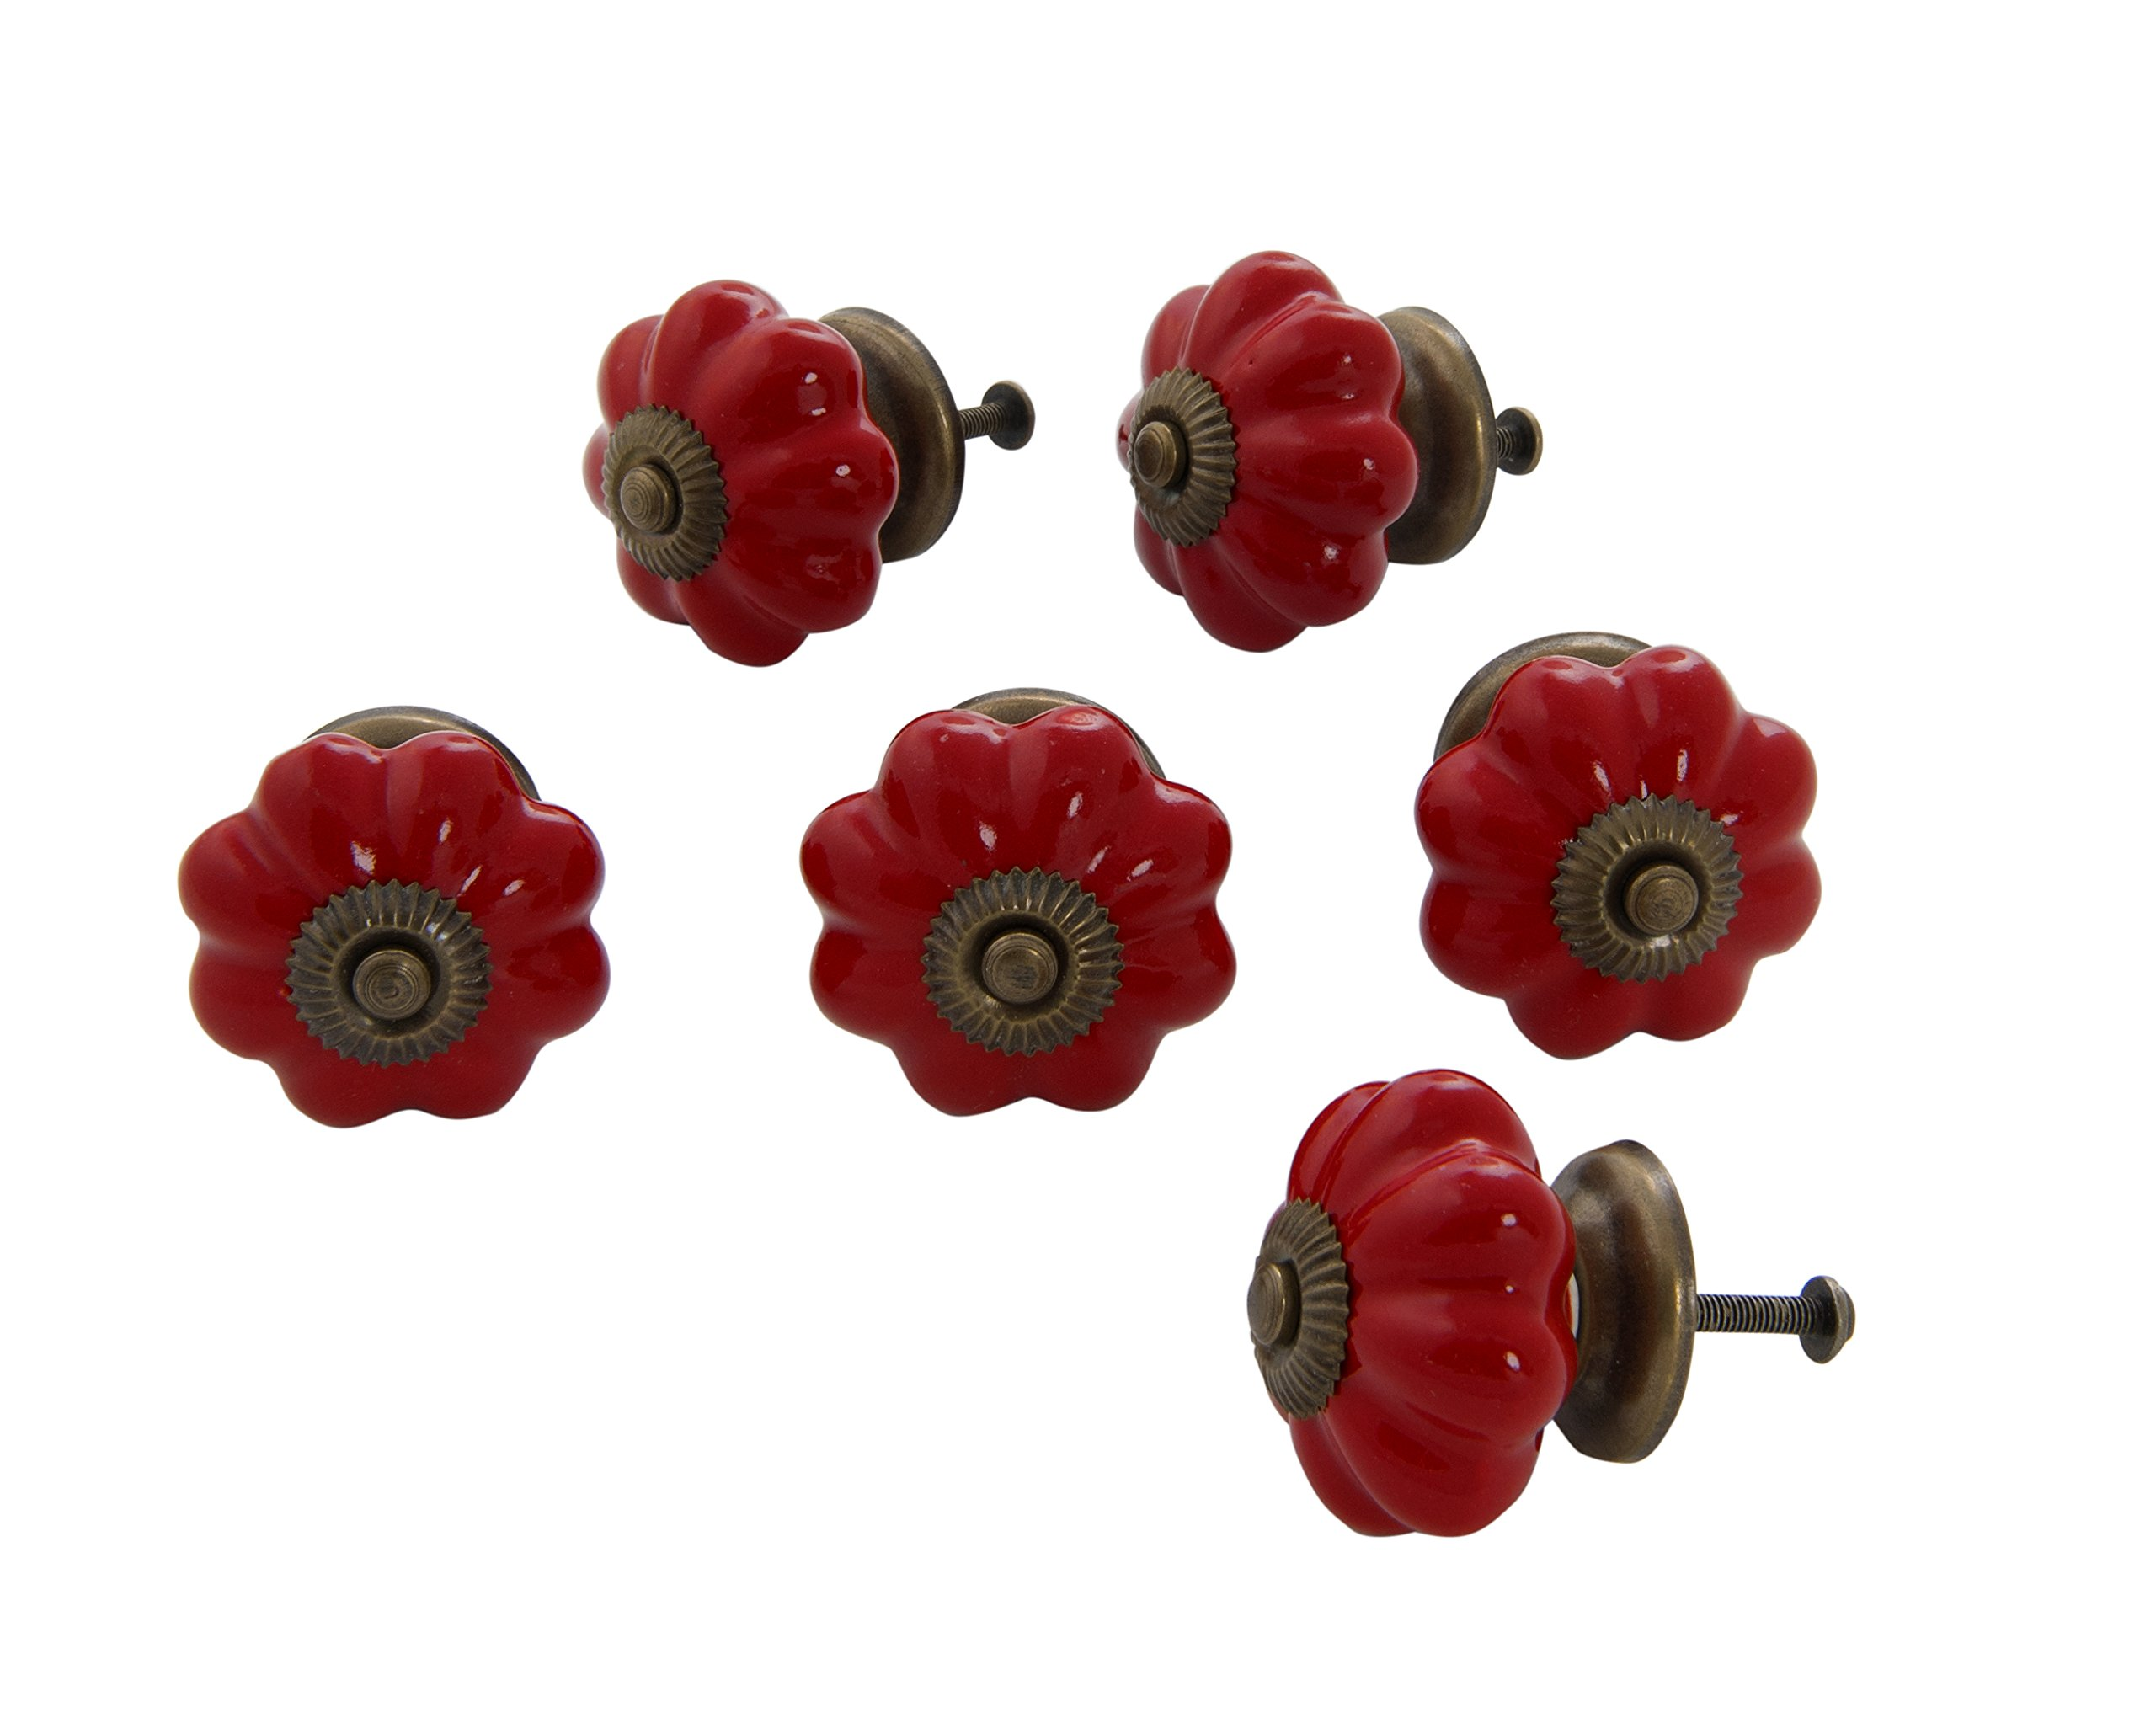 Dritz Home 47056A Ceramic Scallop Knob Handcrafted Knobs for Cabinets & Drawers